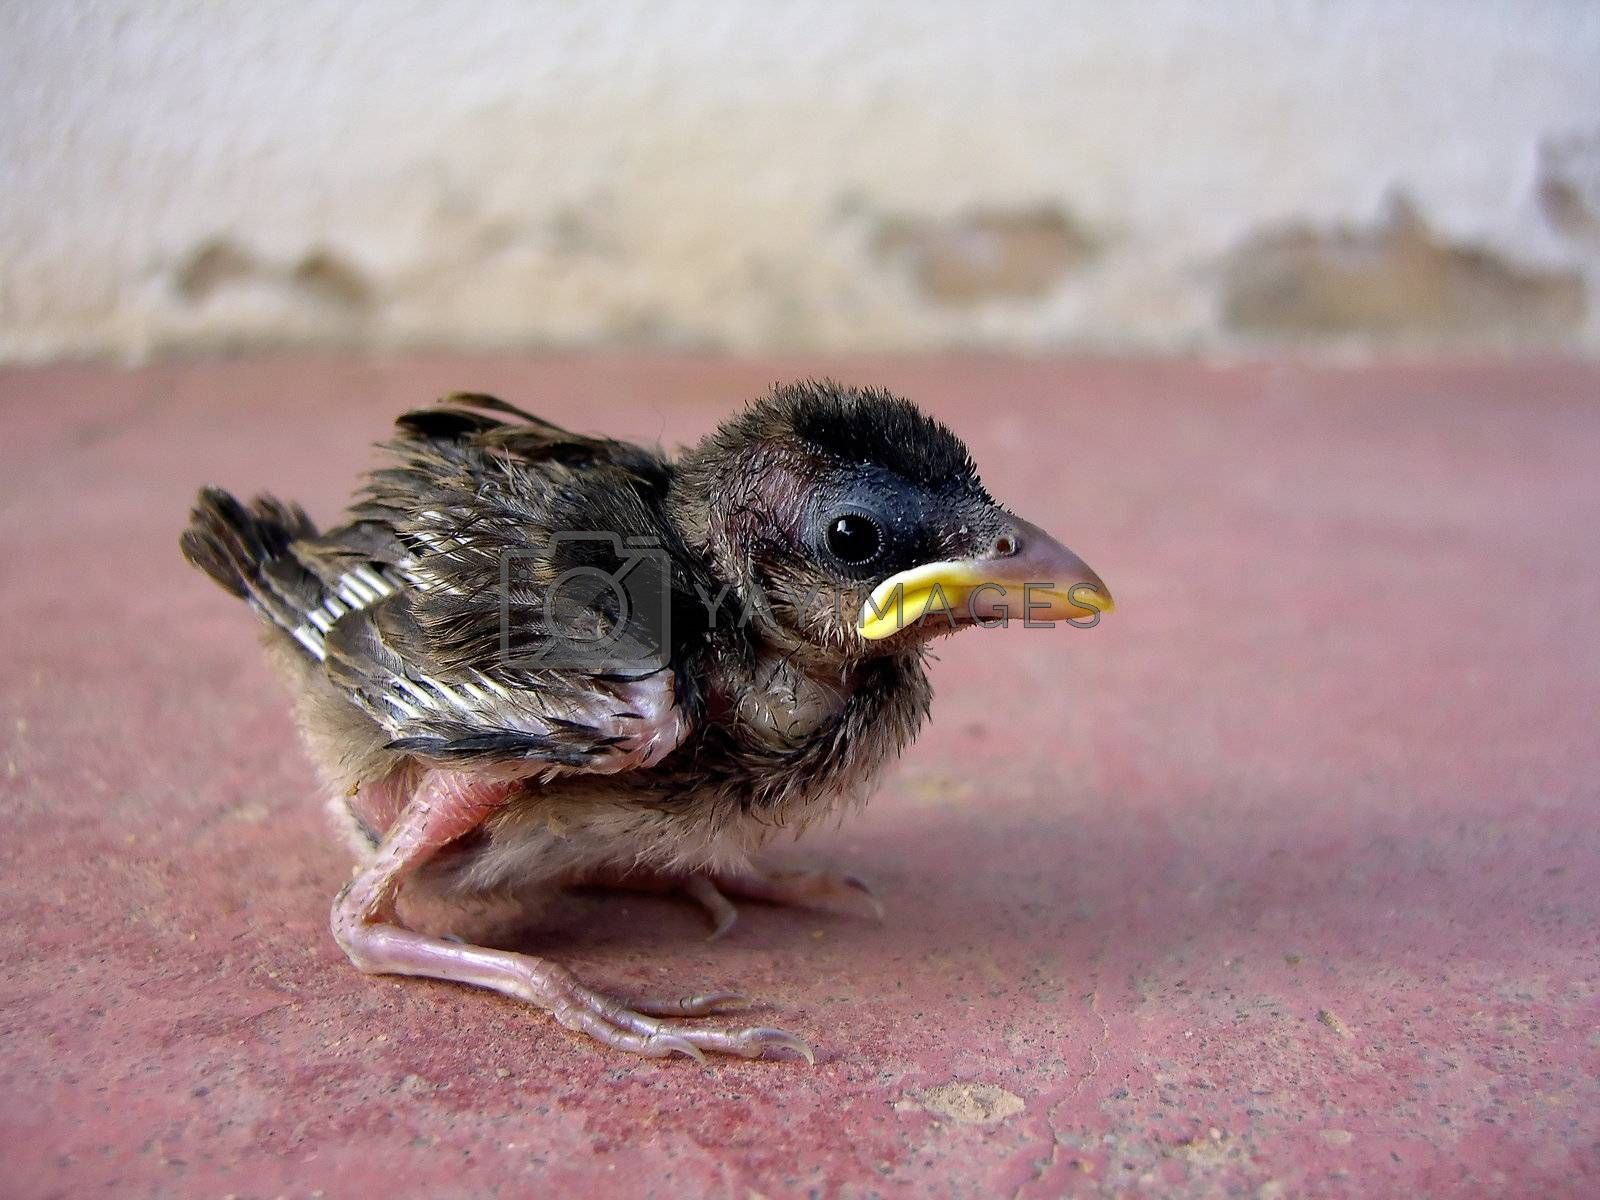 Young sparrow chick on a red ground.